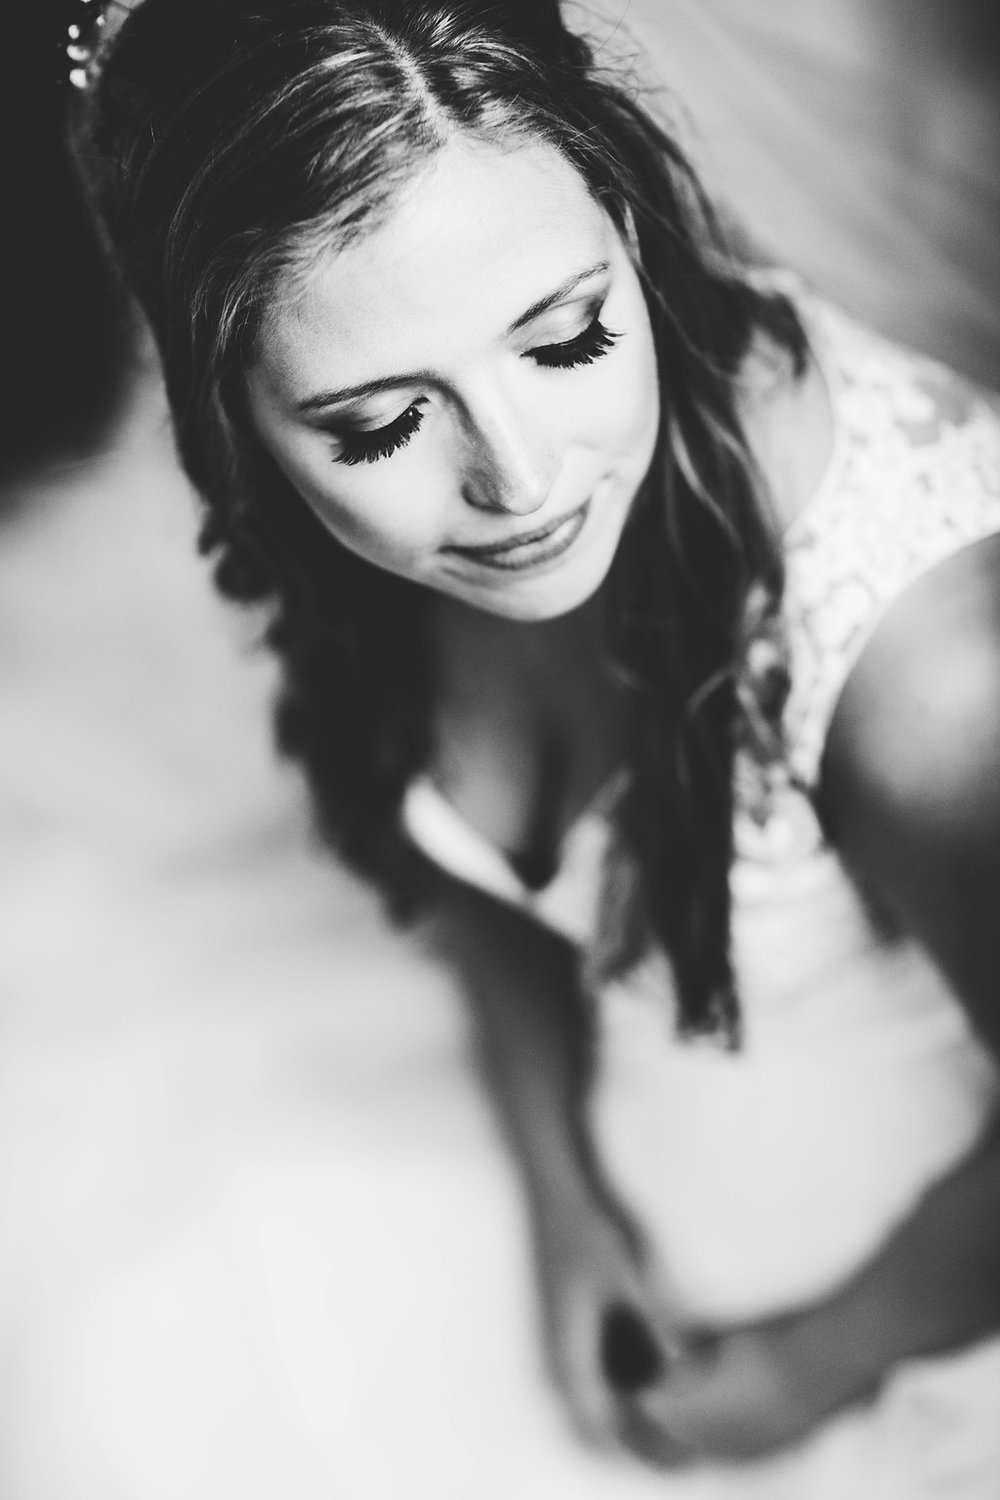 Nicole+Joe_Wedding_Seattle_McMennaminsBothell_6242015_41.jpg